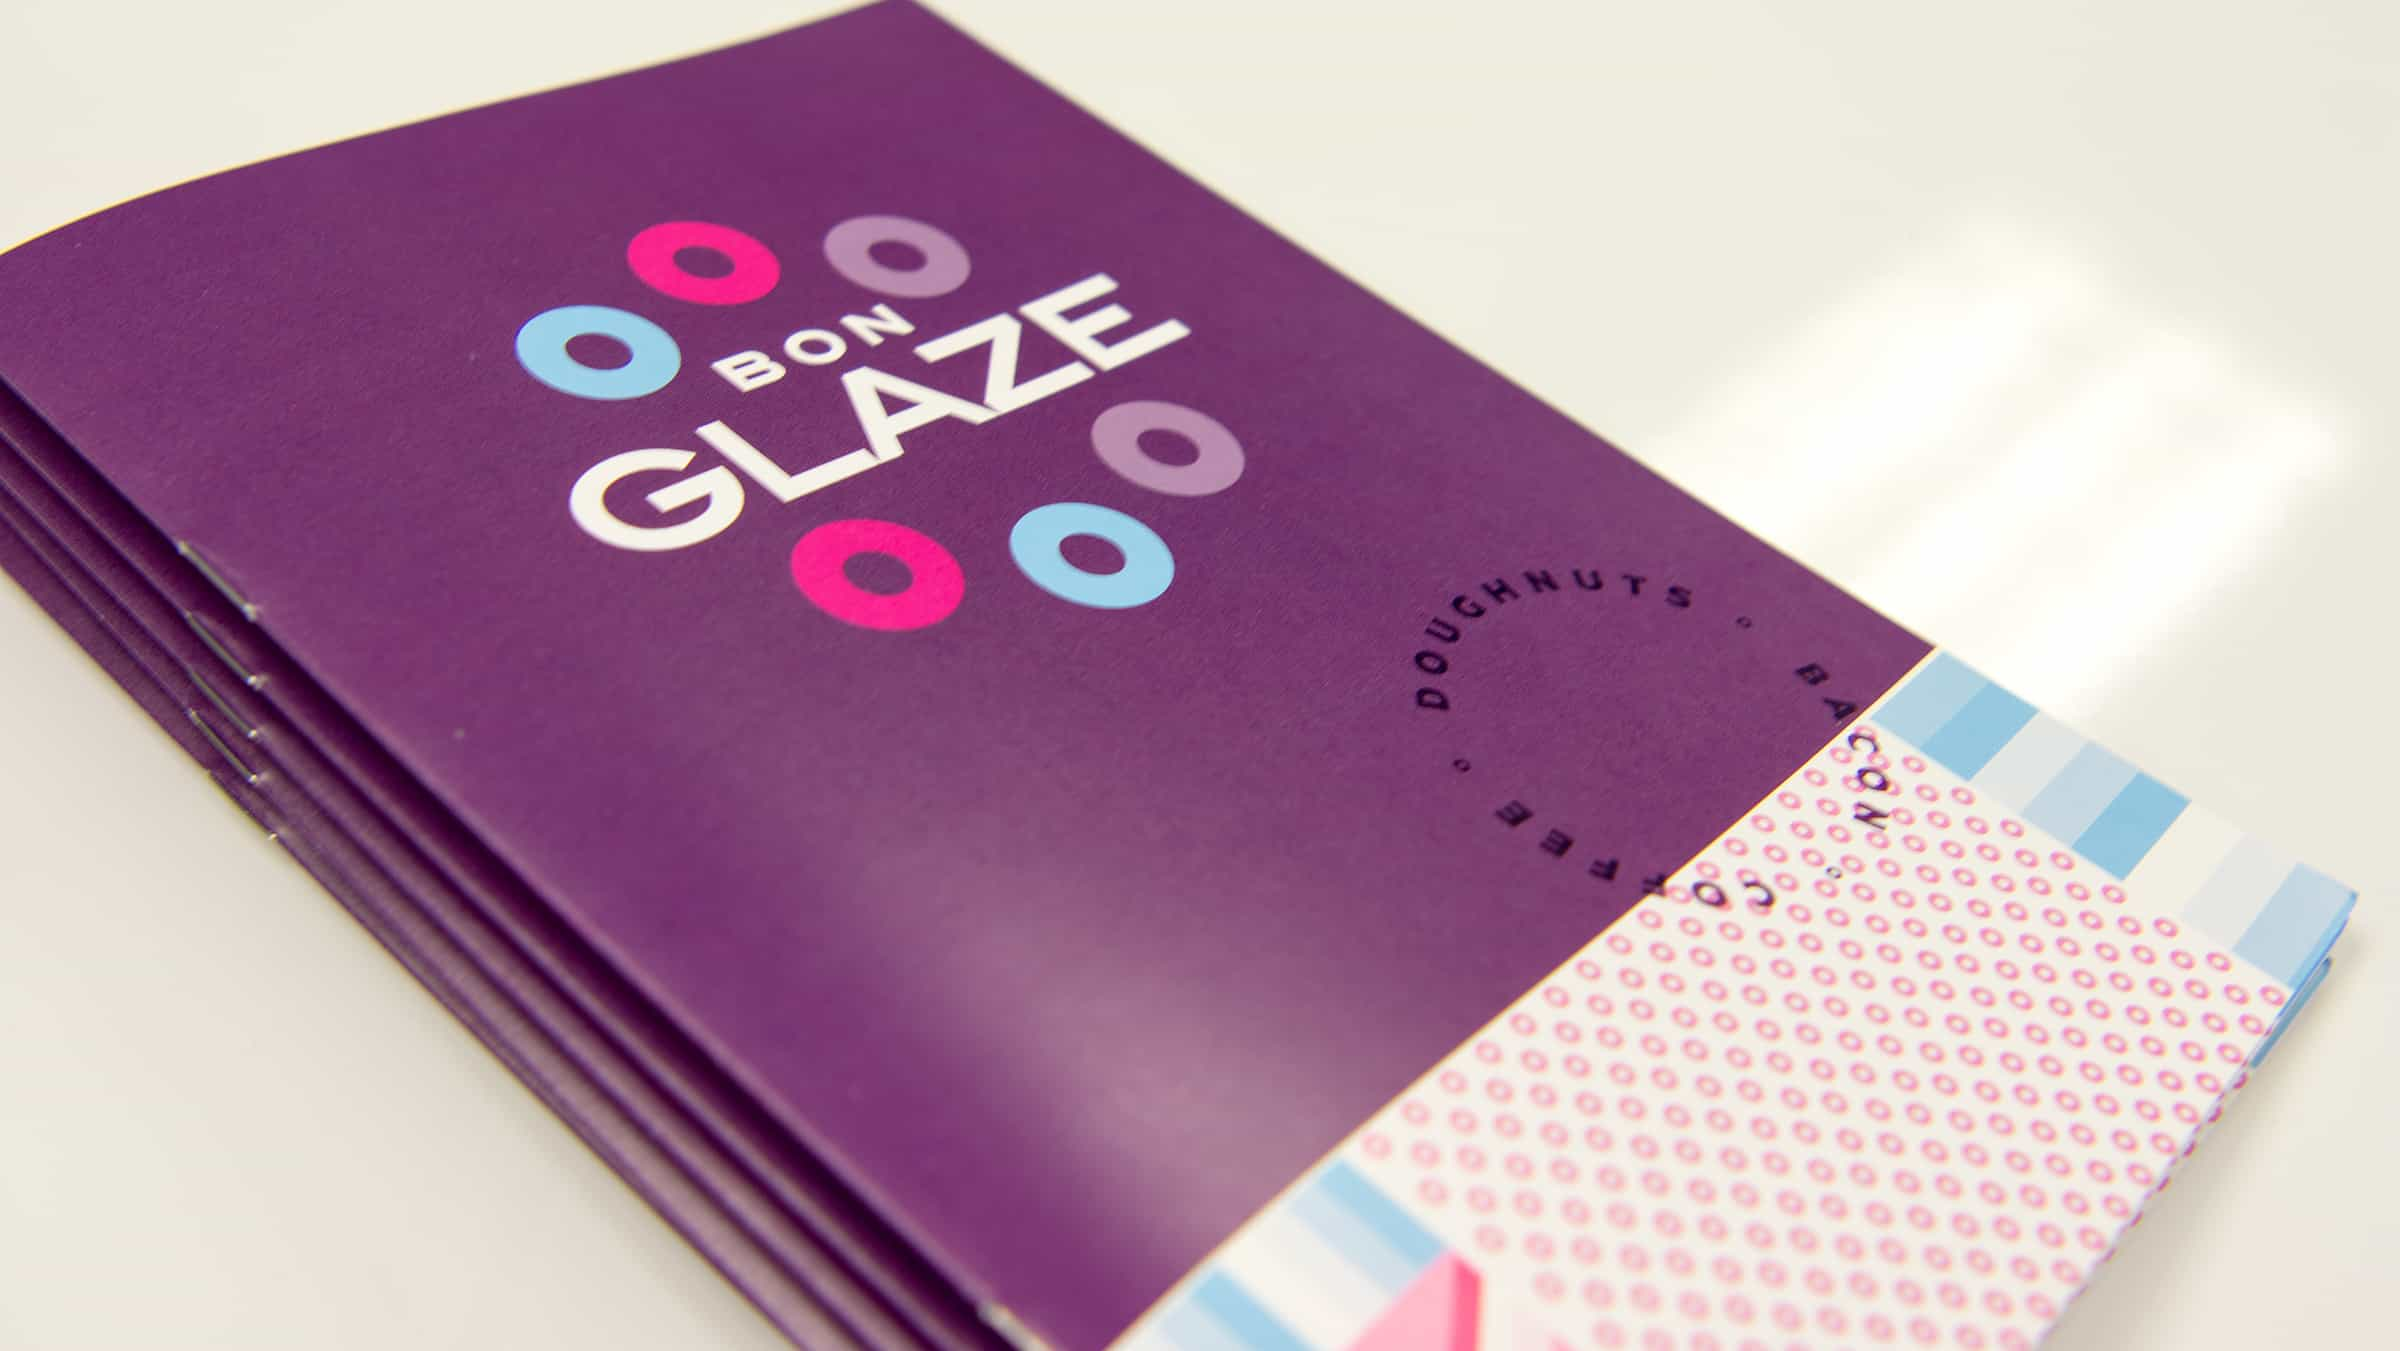 Bon Glaze doughnuts restaurant branding and design